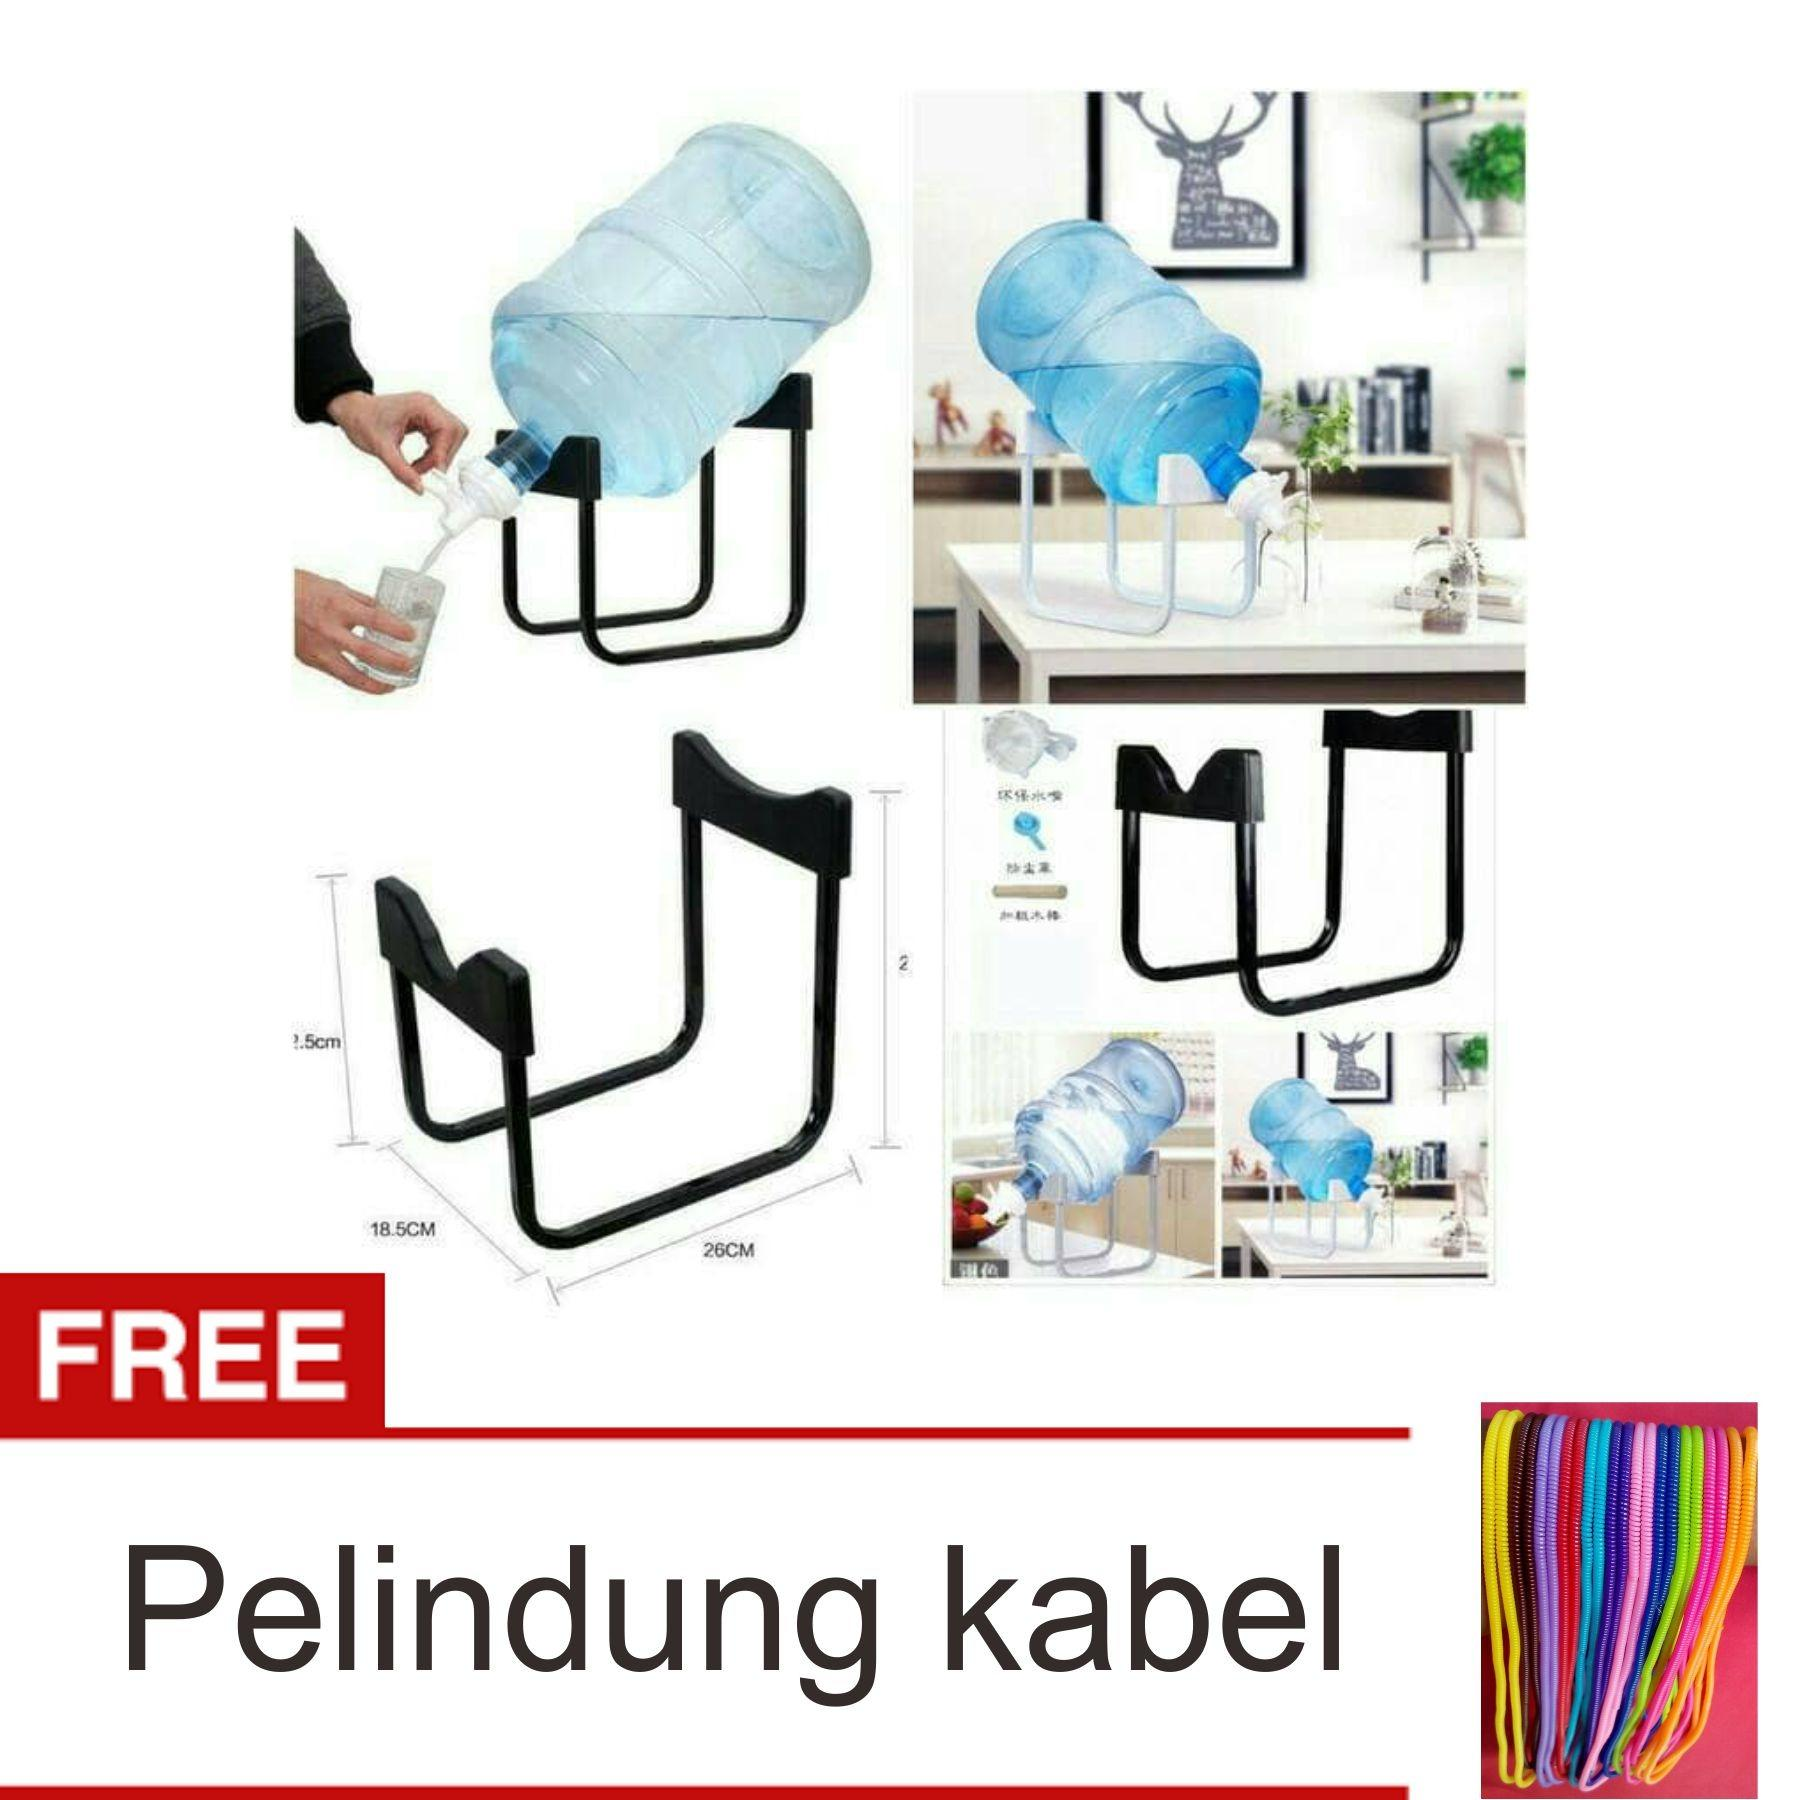 Lanjarjaya Rak Galon Tatakan Galon + Kran Air Galon / Dispenser Air Galon / Dispenser Minuman / Tatakan Aqua / Rak Besi Warna Random + Pelindung Kabel